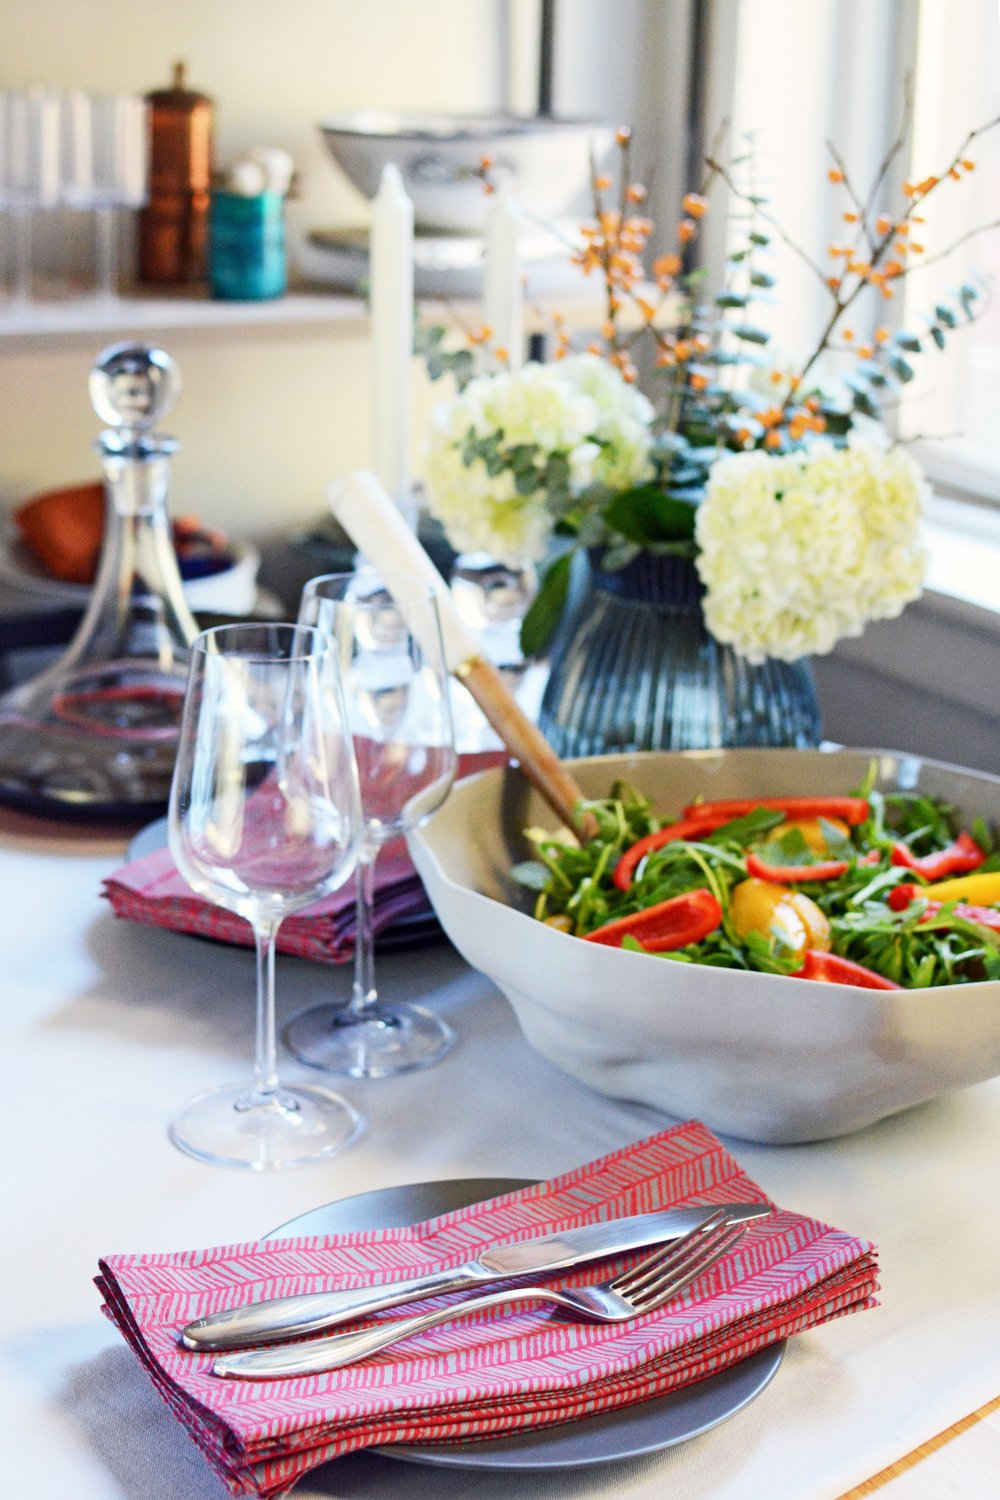 Salad bowl, serving tools, and napkins available at evergreenandlime.com